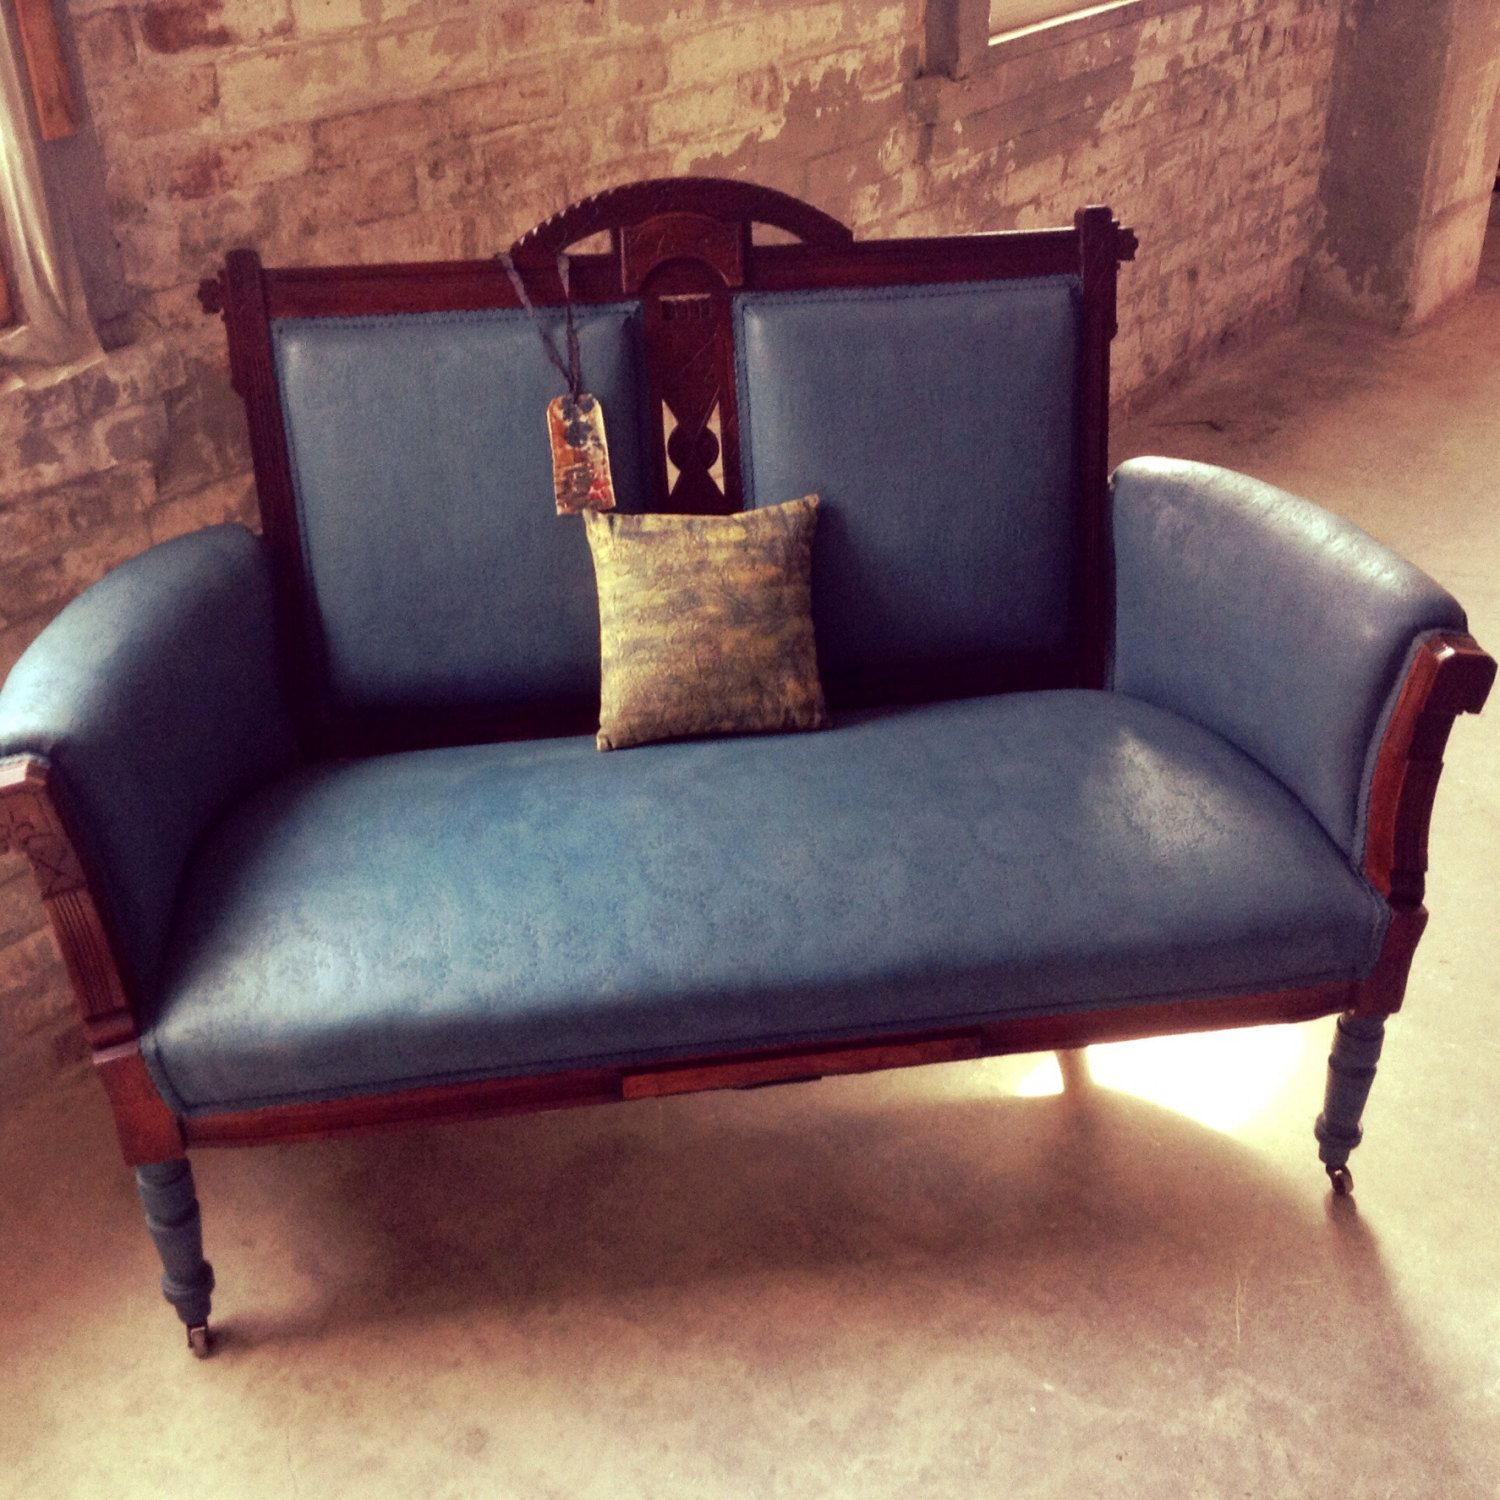 Antique Loveseat French Country Couch Victorian Settee Vintage Farmhouse Eastlake